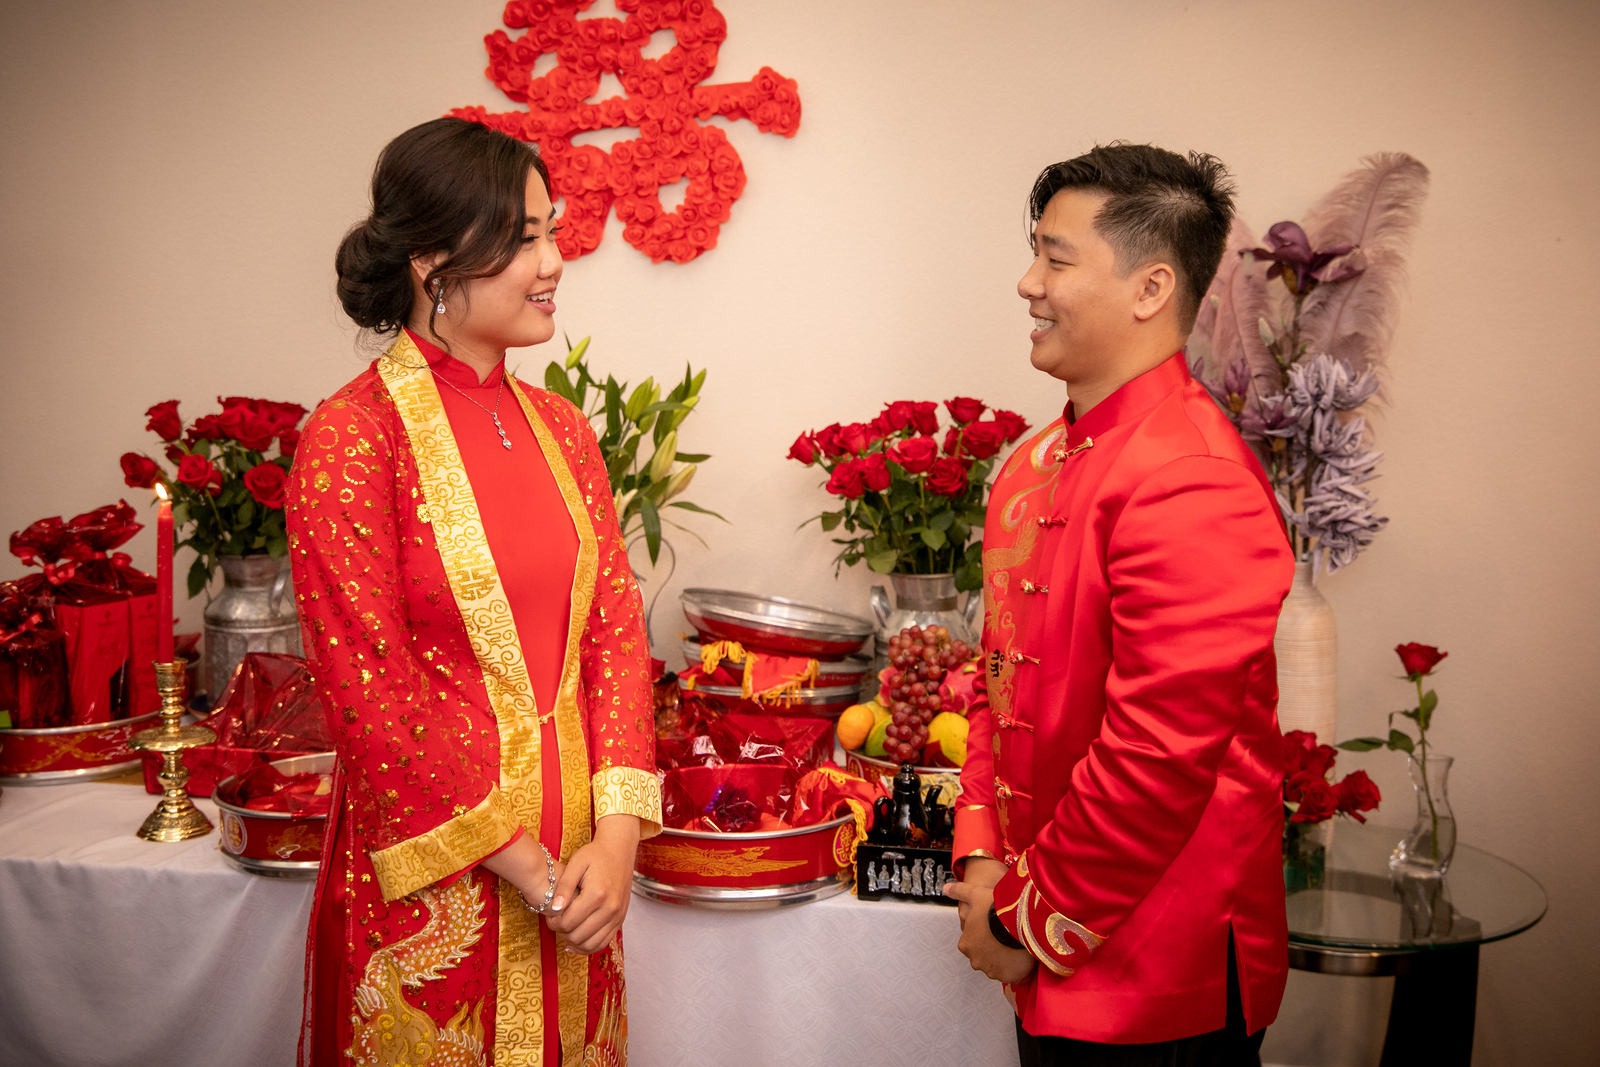 a bride and groom talking to one another at their wedding event